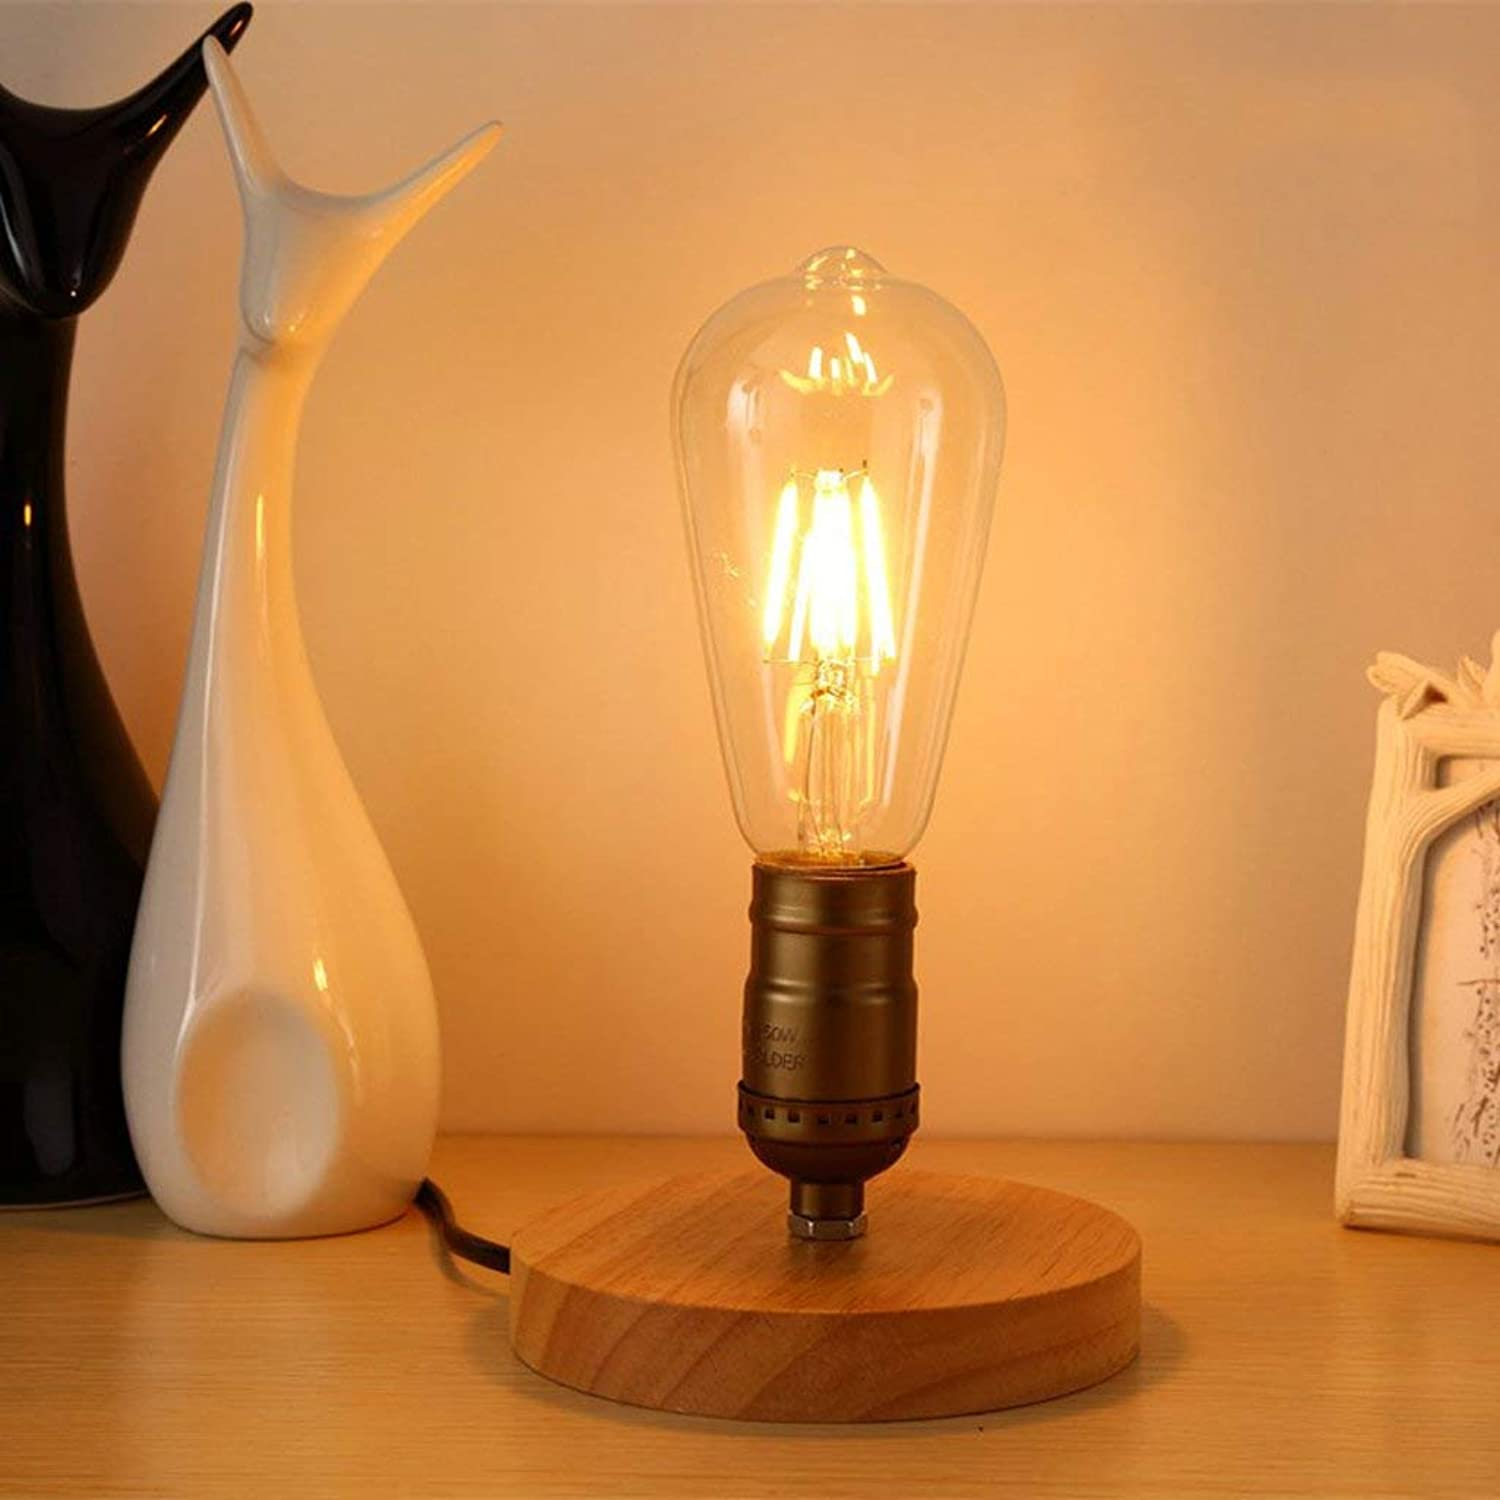 WHKFD Wet Light Edison Industrial Vintage Style, Creative Light Cafe Personality, H10Cm  W12Cm (Version  F)